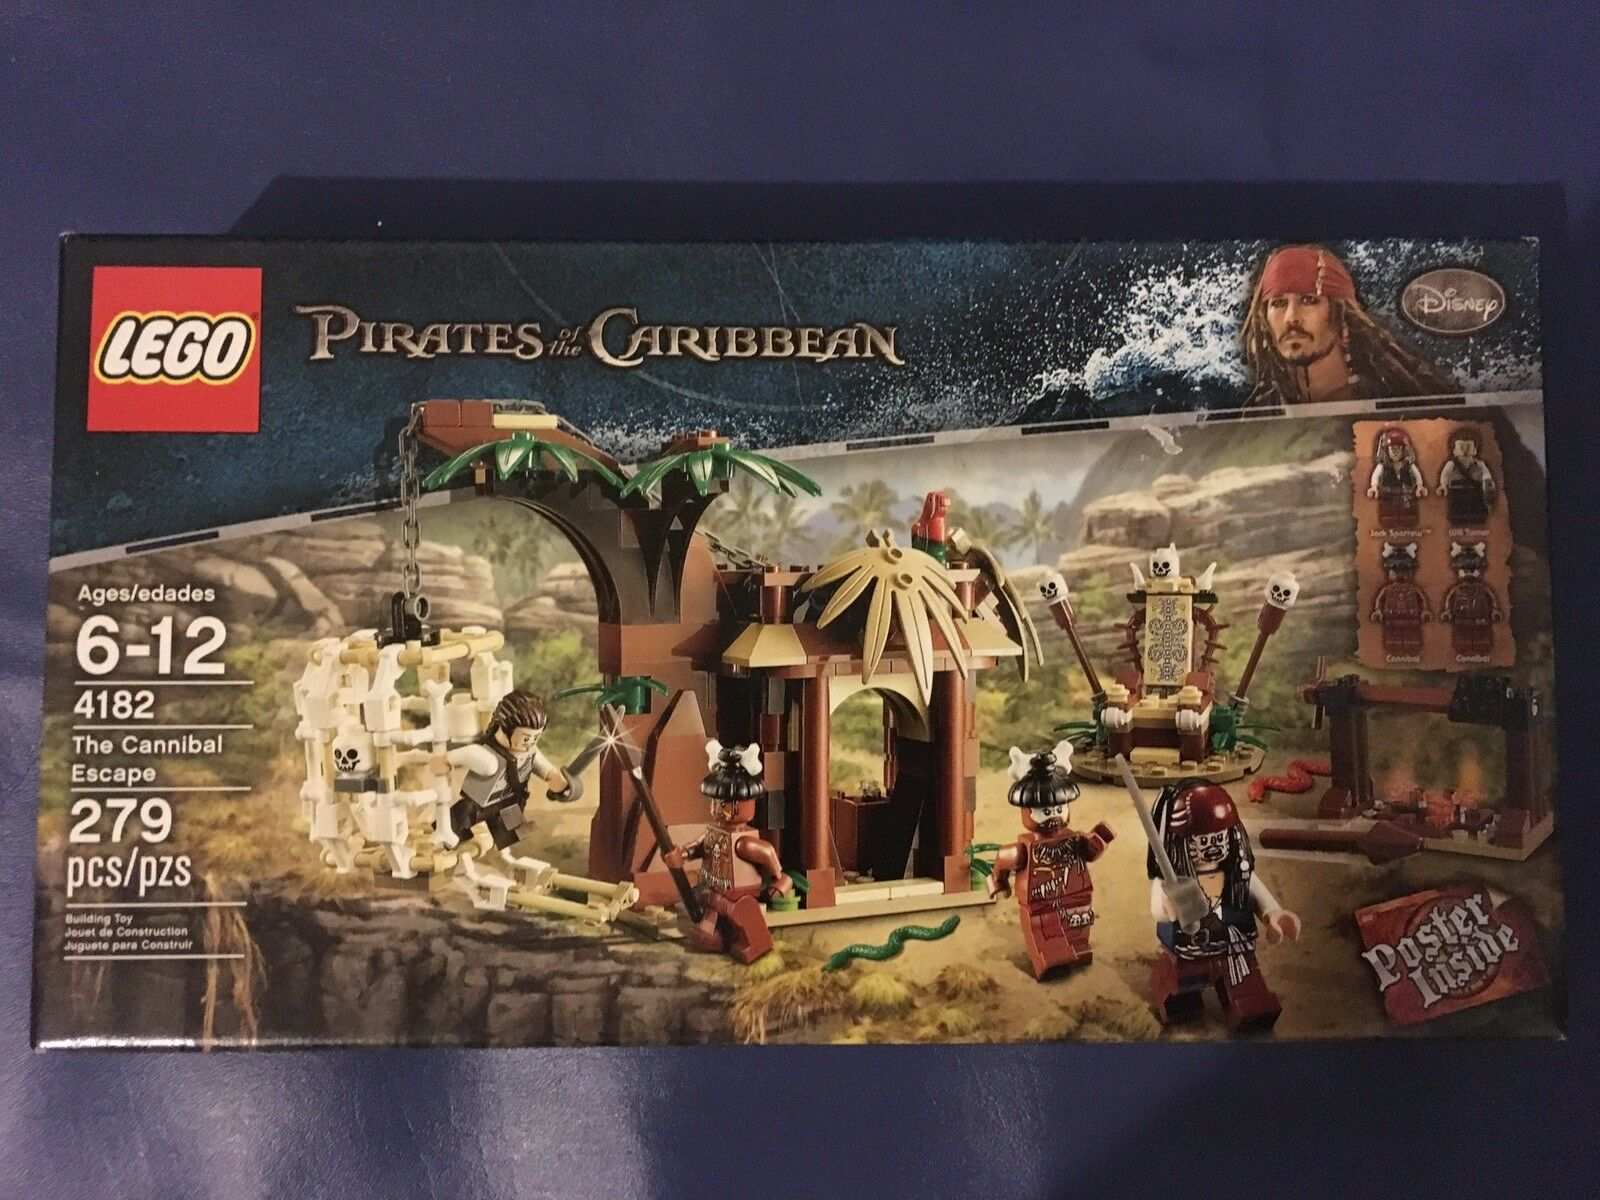 LEGO  Pirates of of of the Caribbean - The Cannibal Escape (4182) RETIRED   NIB   3df6d1